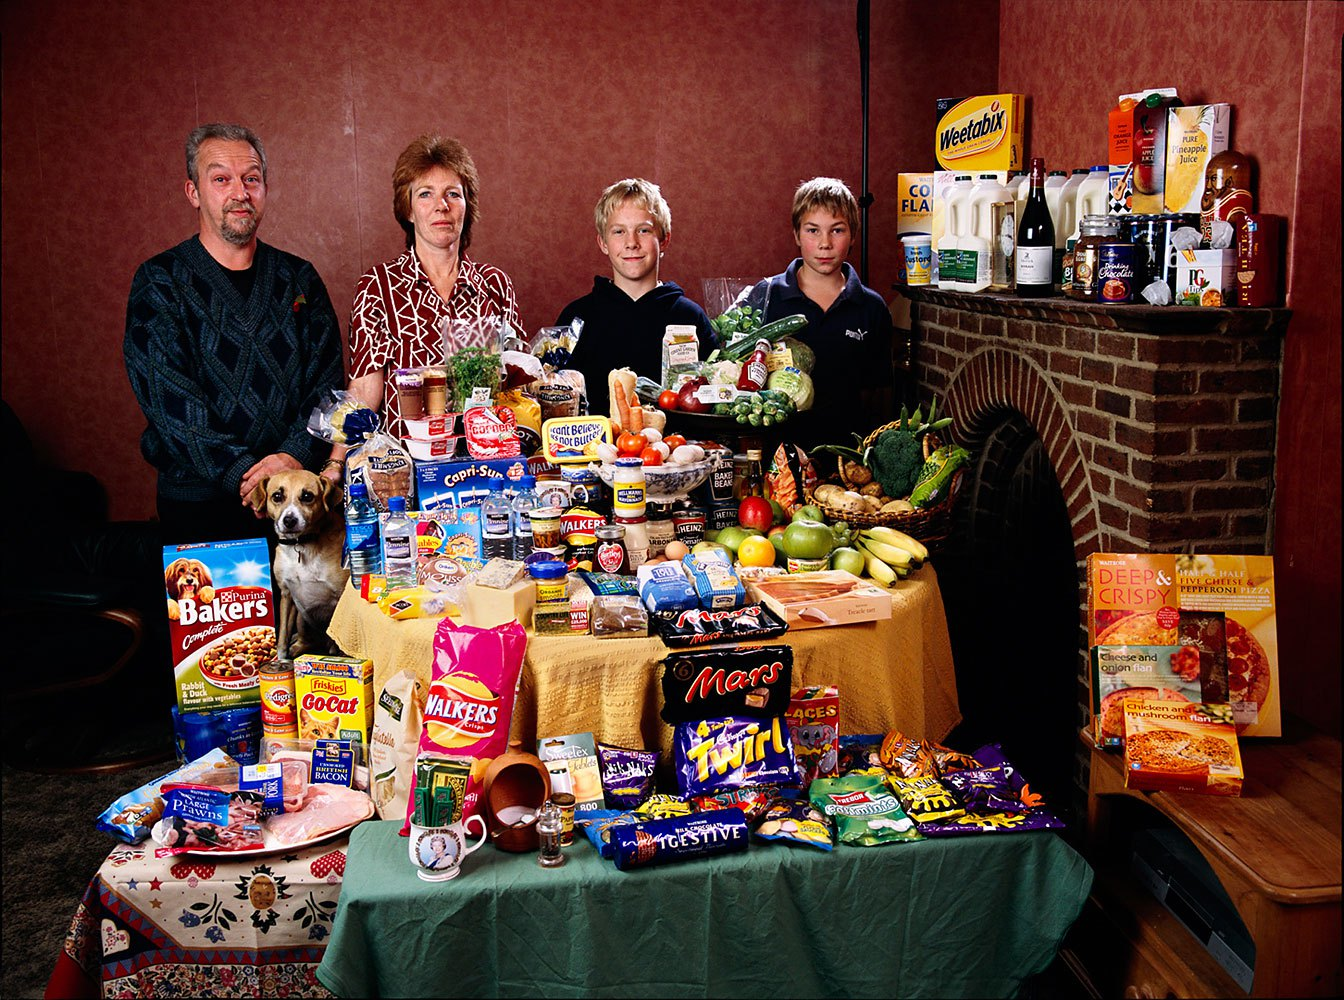 Great Britain: The Bainton family of Cllingbourne Ducis.                                                              Food expenditure for one week: 155.54 British Pounds or $253.15.                               Favorite foods: avocado, mayonnaise sandwich, prawn cocktail, chocolate fudge cake with cream.